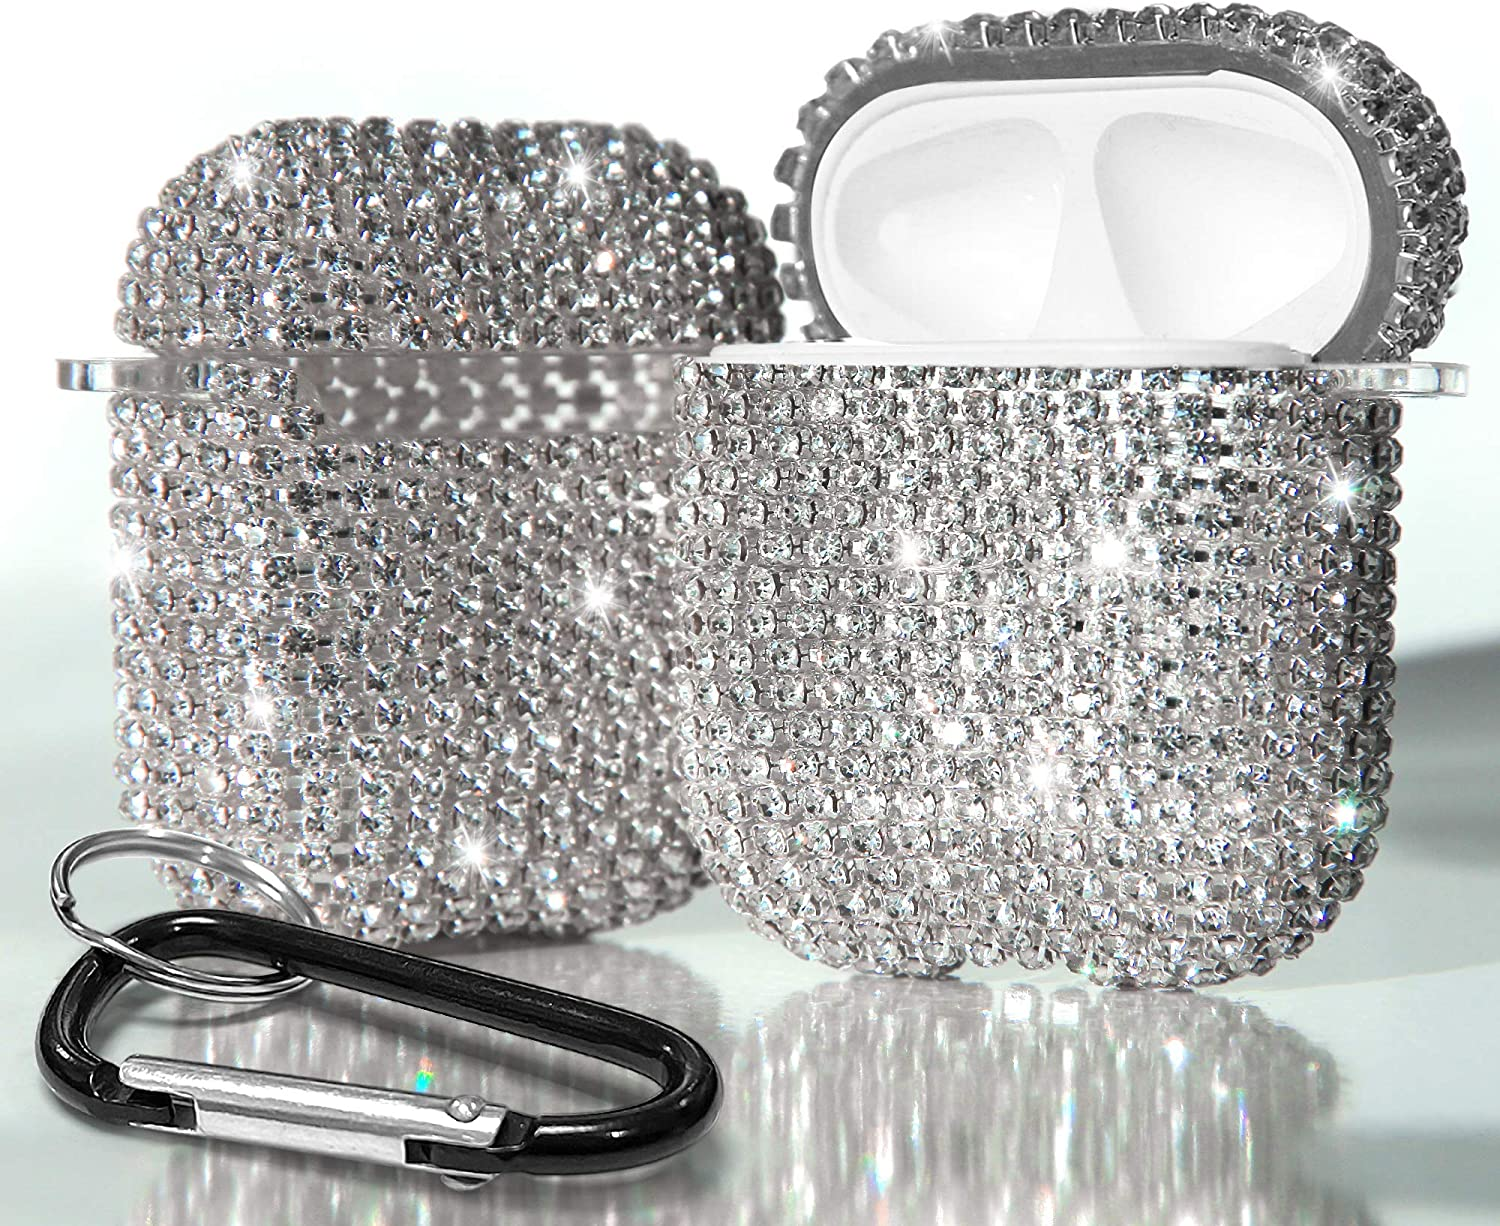 PimpCase Glitter Bling Shining Diamond Case Shock Proof Cover Compatible with Apple AirPods Case W/Keychain (Silver)